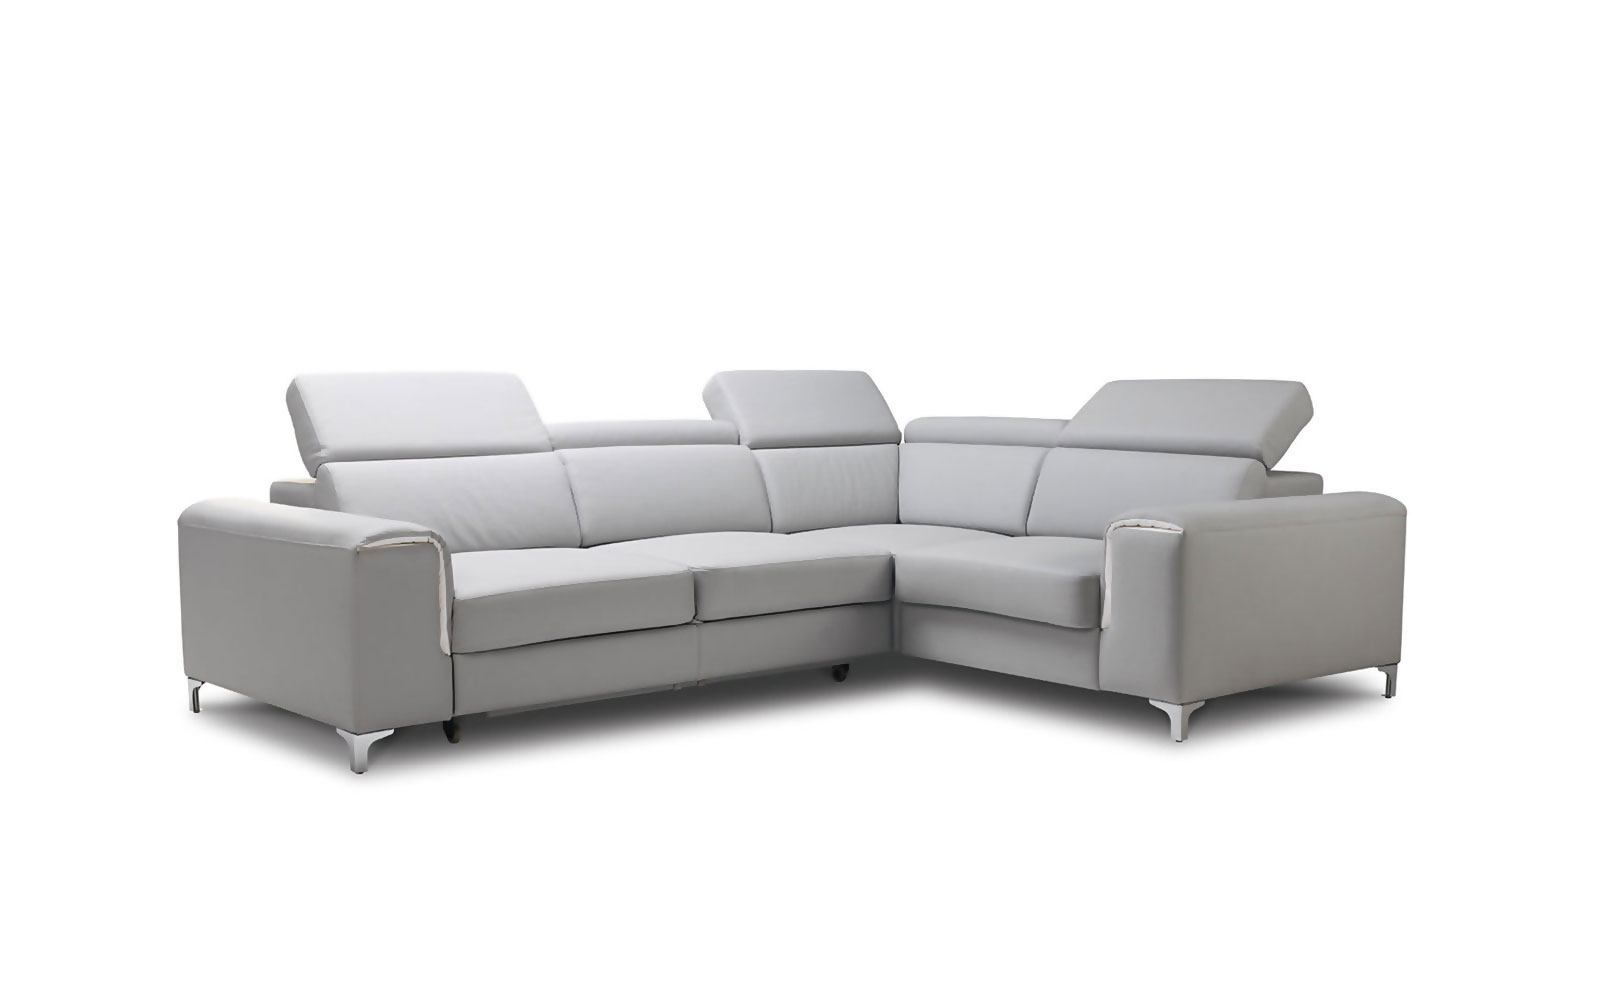 Genova sofa 2 stagra meble other elements of collection parisarafo Image collections